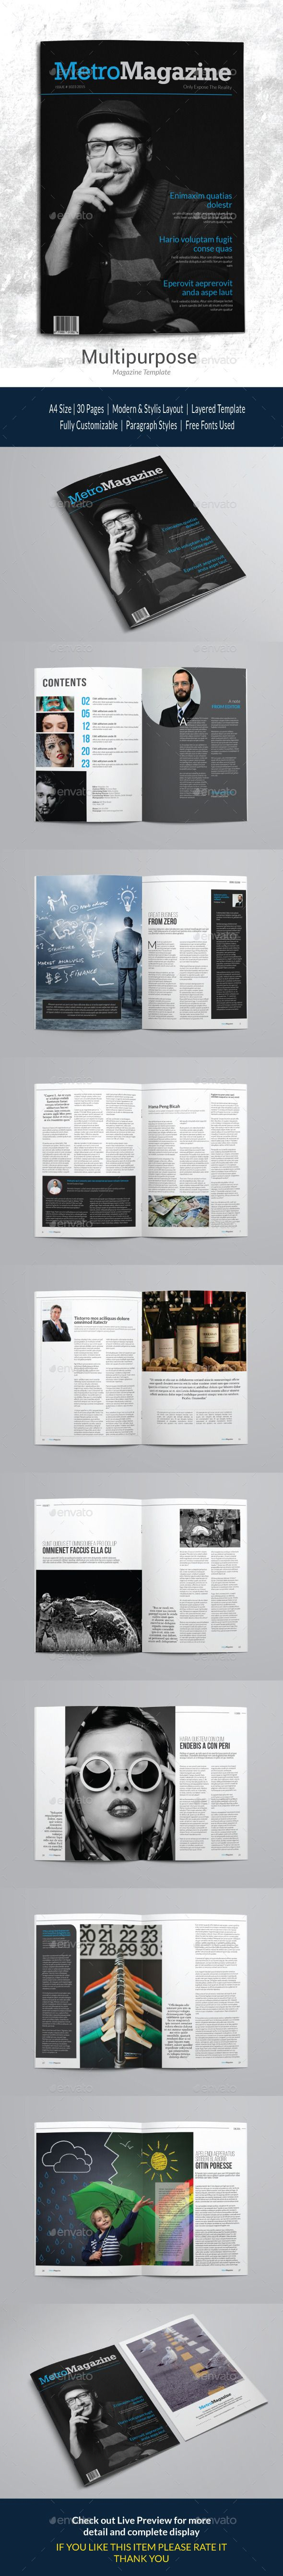 Indesign Magazine Template  #newspaper • Click here to download ! http://graphicriver.net/item/indesign-magazine-template/11803437?s_rank=258&ref=pxcr